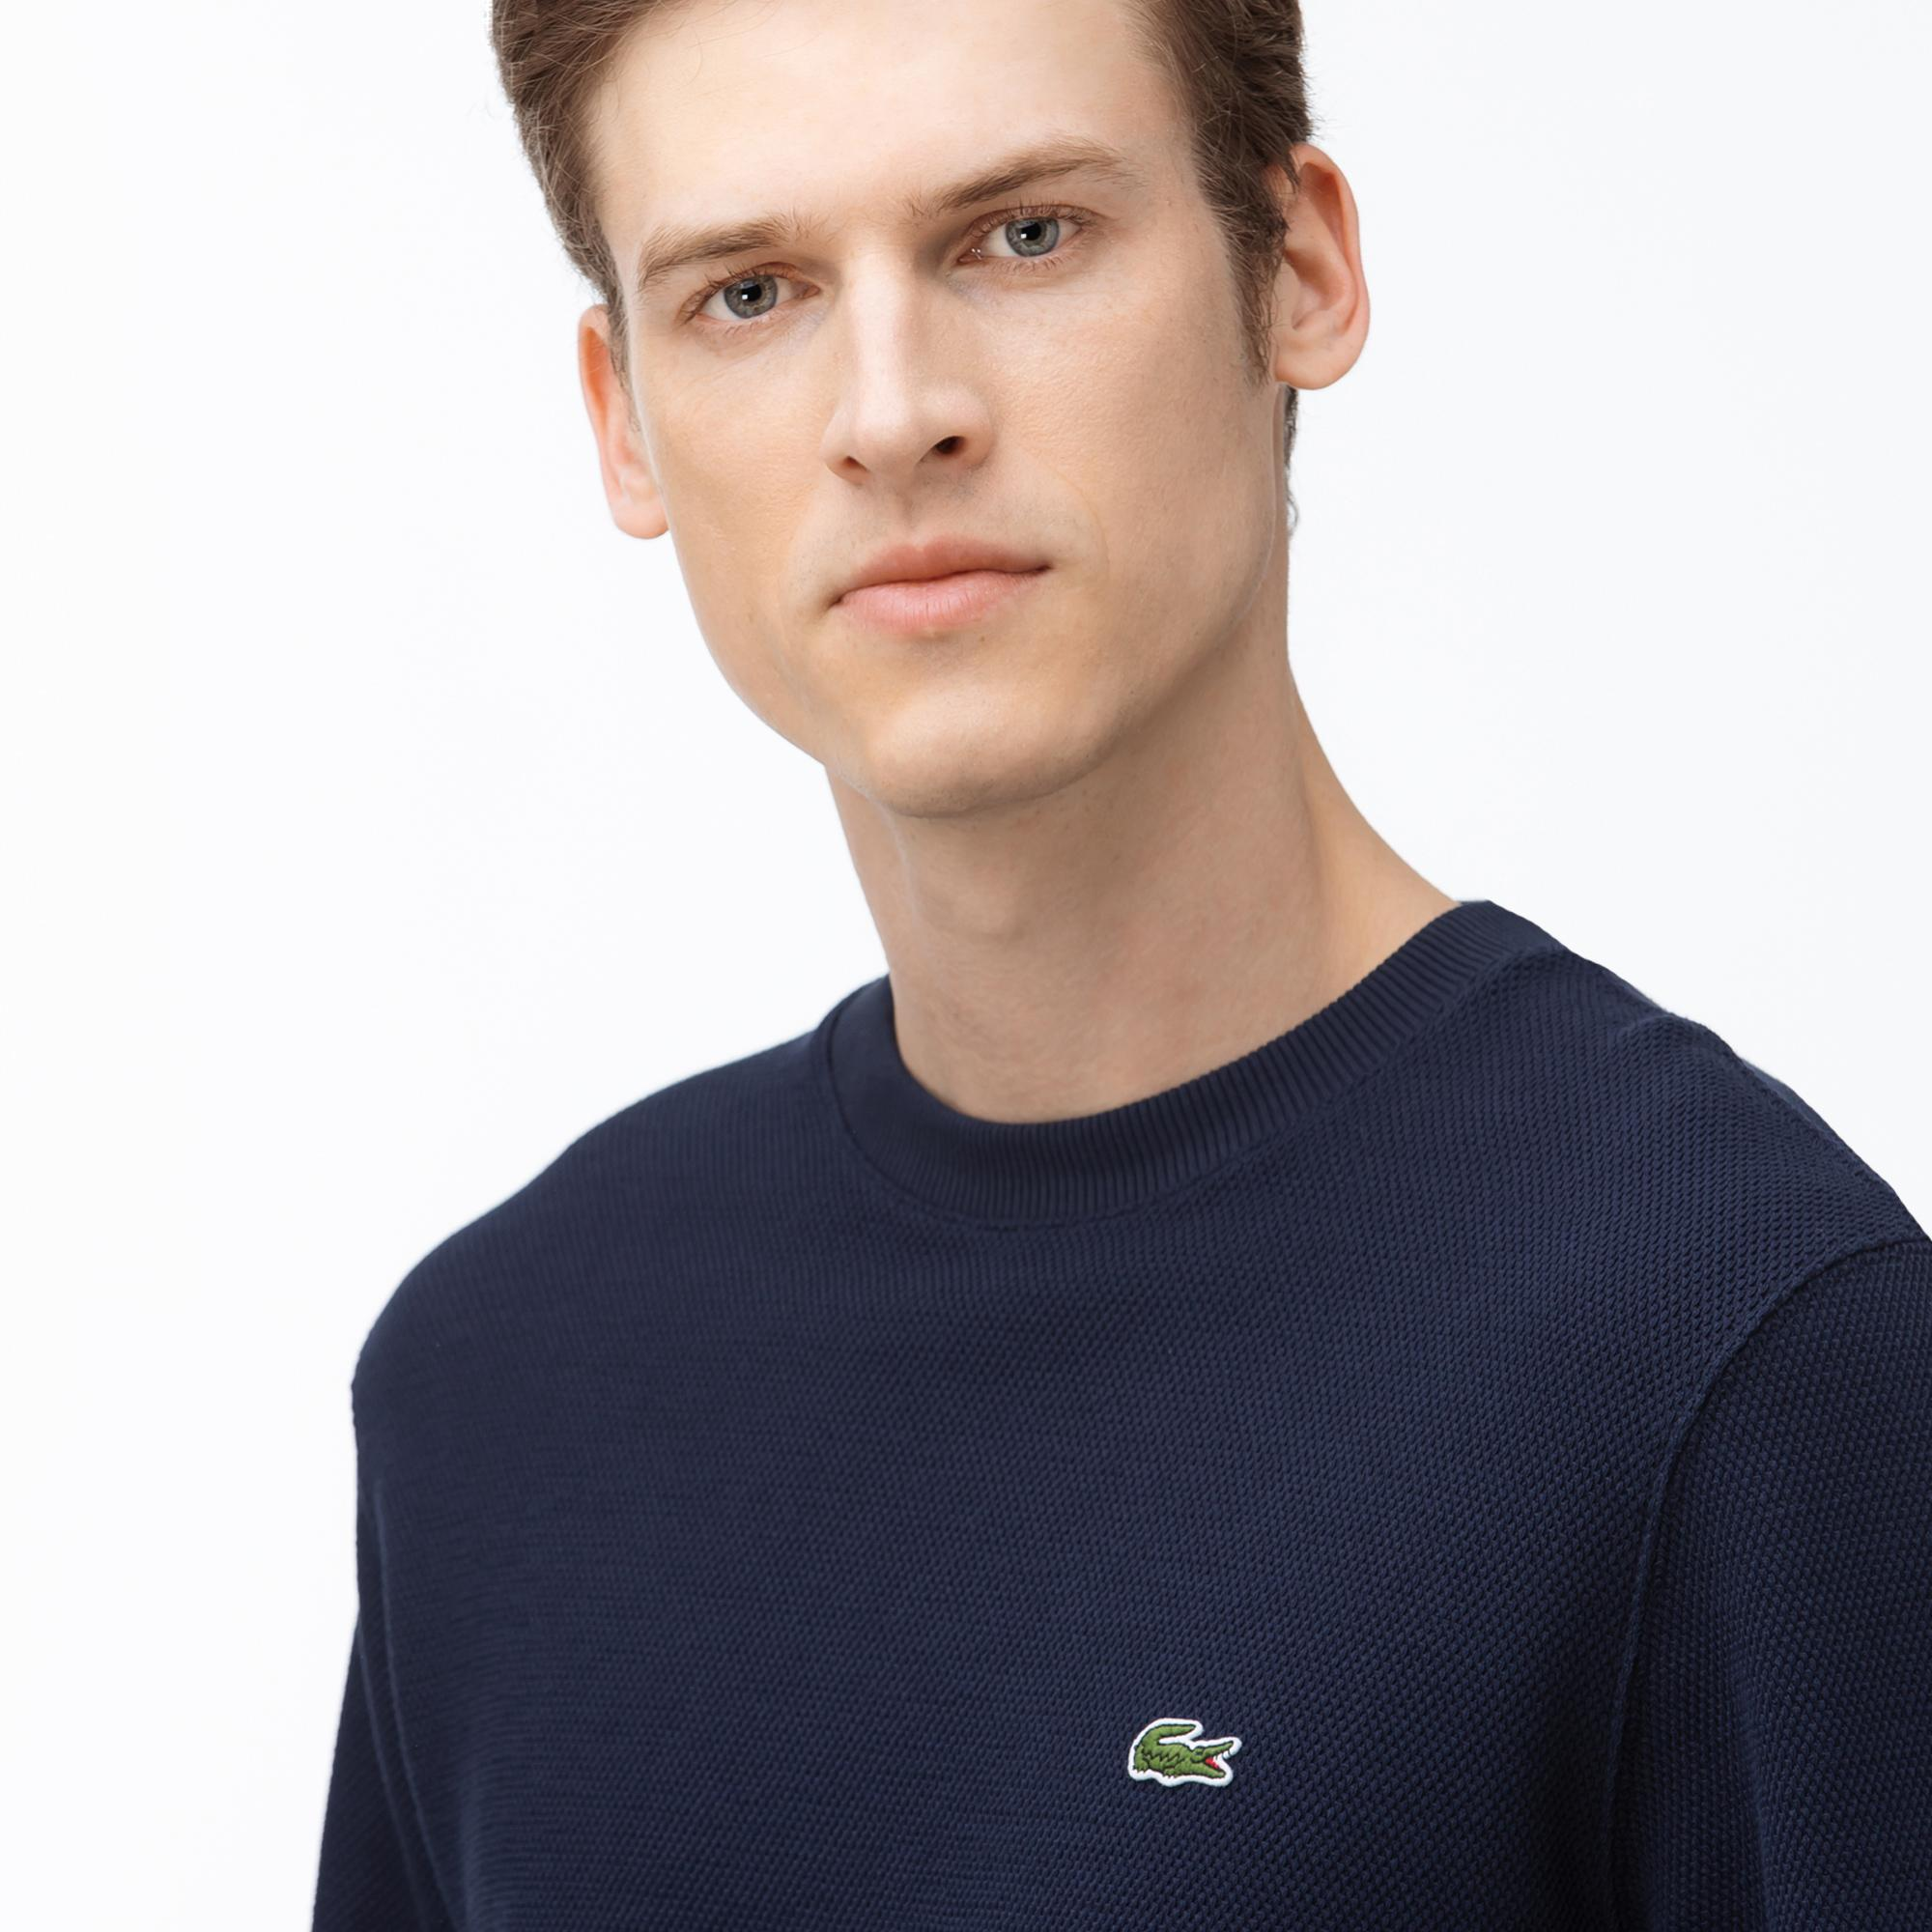 Lacoste Men's Cotton Piqué Fleece Crew Neck Sweatshirt